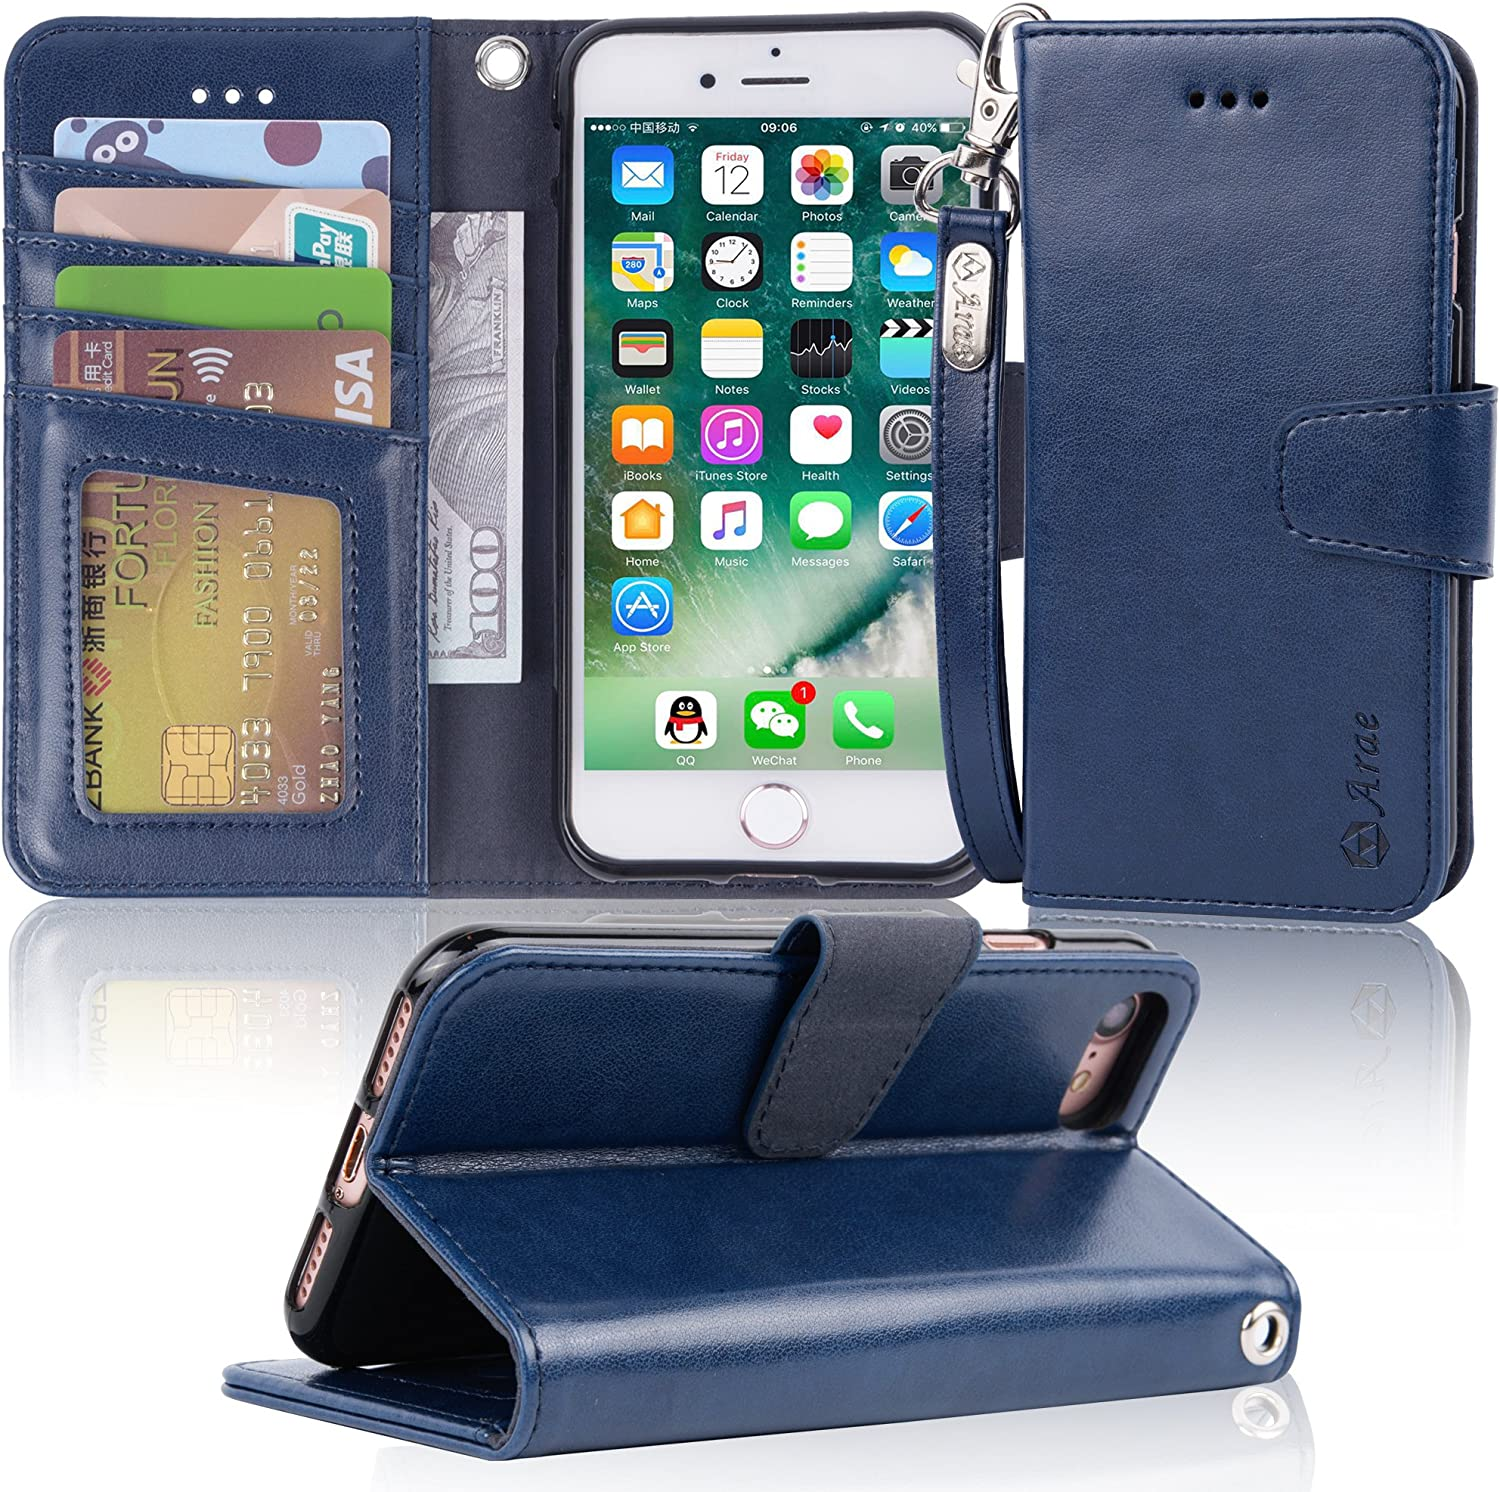 Arae Case for iPhone 7 / iPhone 8 / iPhone SE 2020, Premium PU leather wallet Case with Kickstand and Flip Cover for iPhone 7 / iPhone 8 / iPhone SE 2nd Generation 4.7 inch, blue